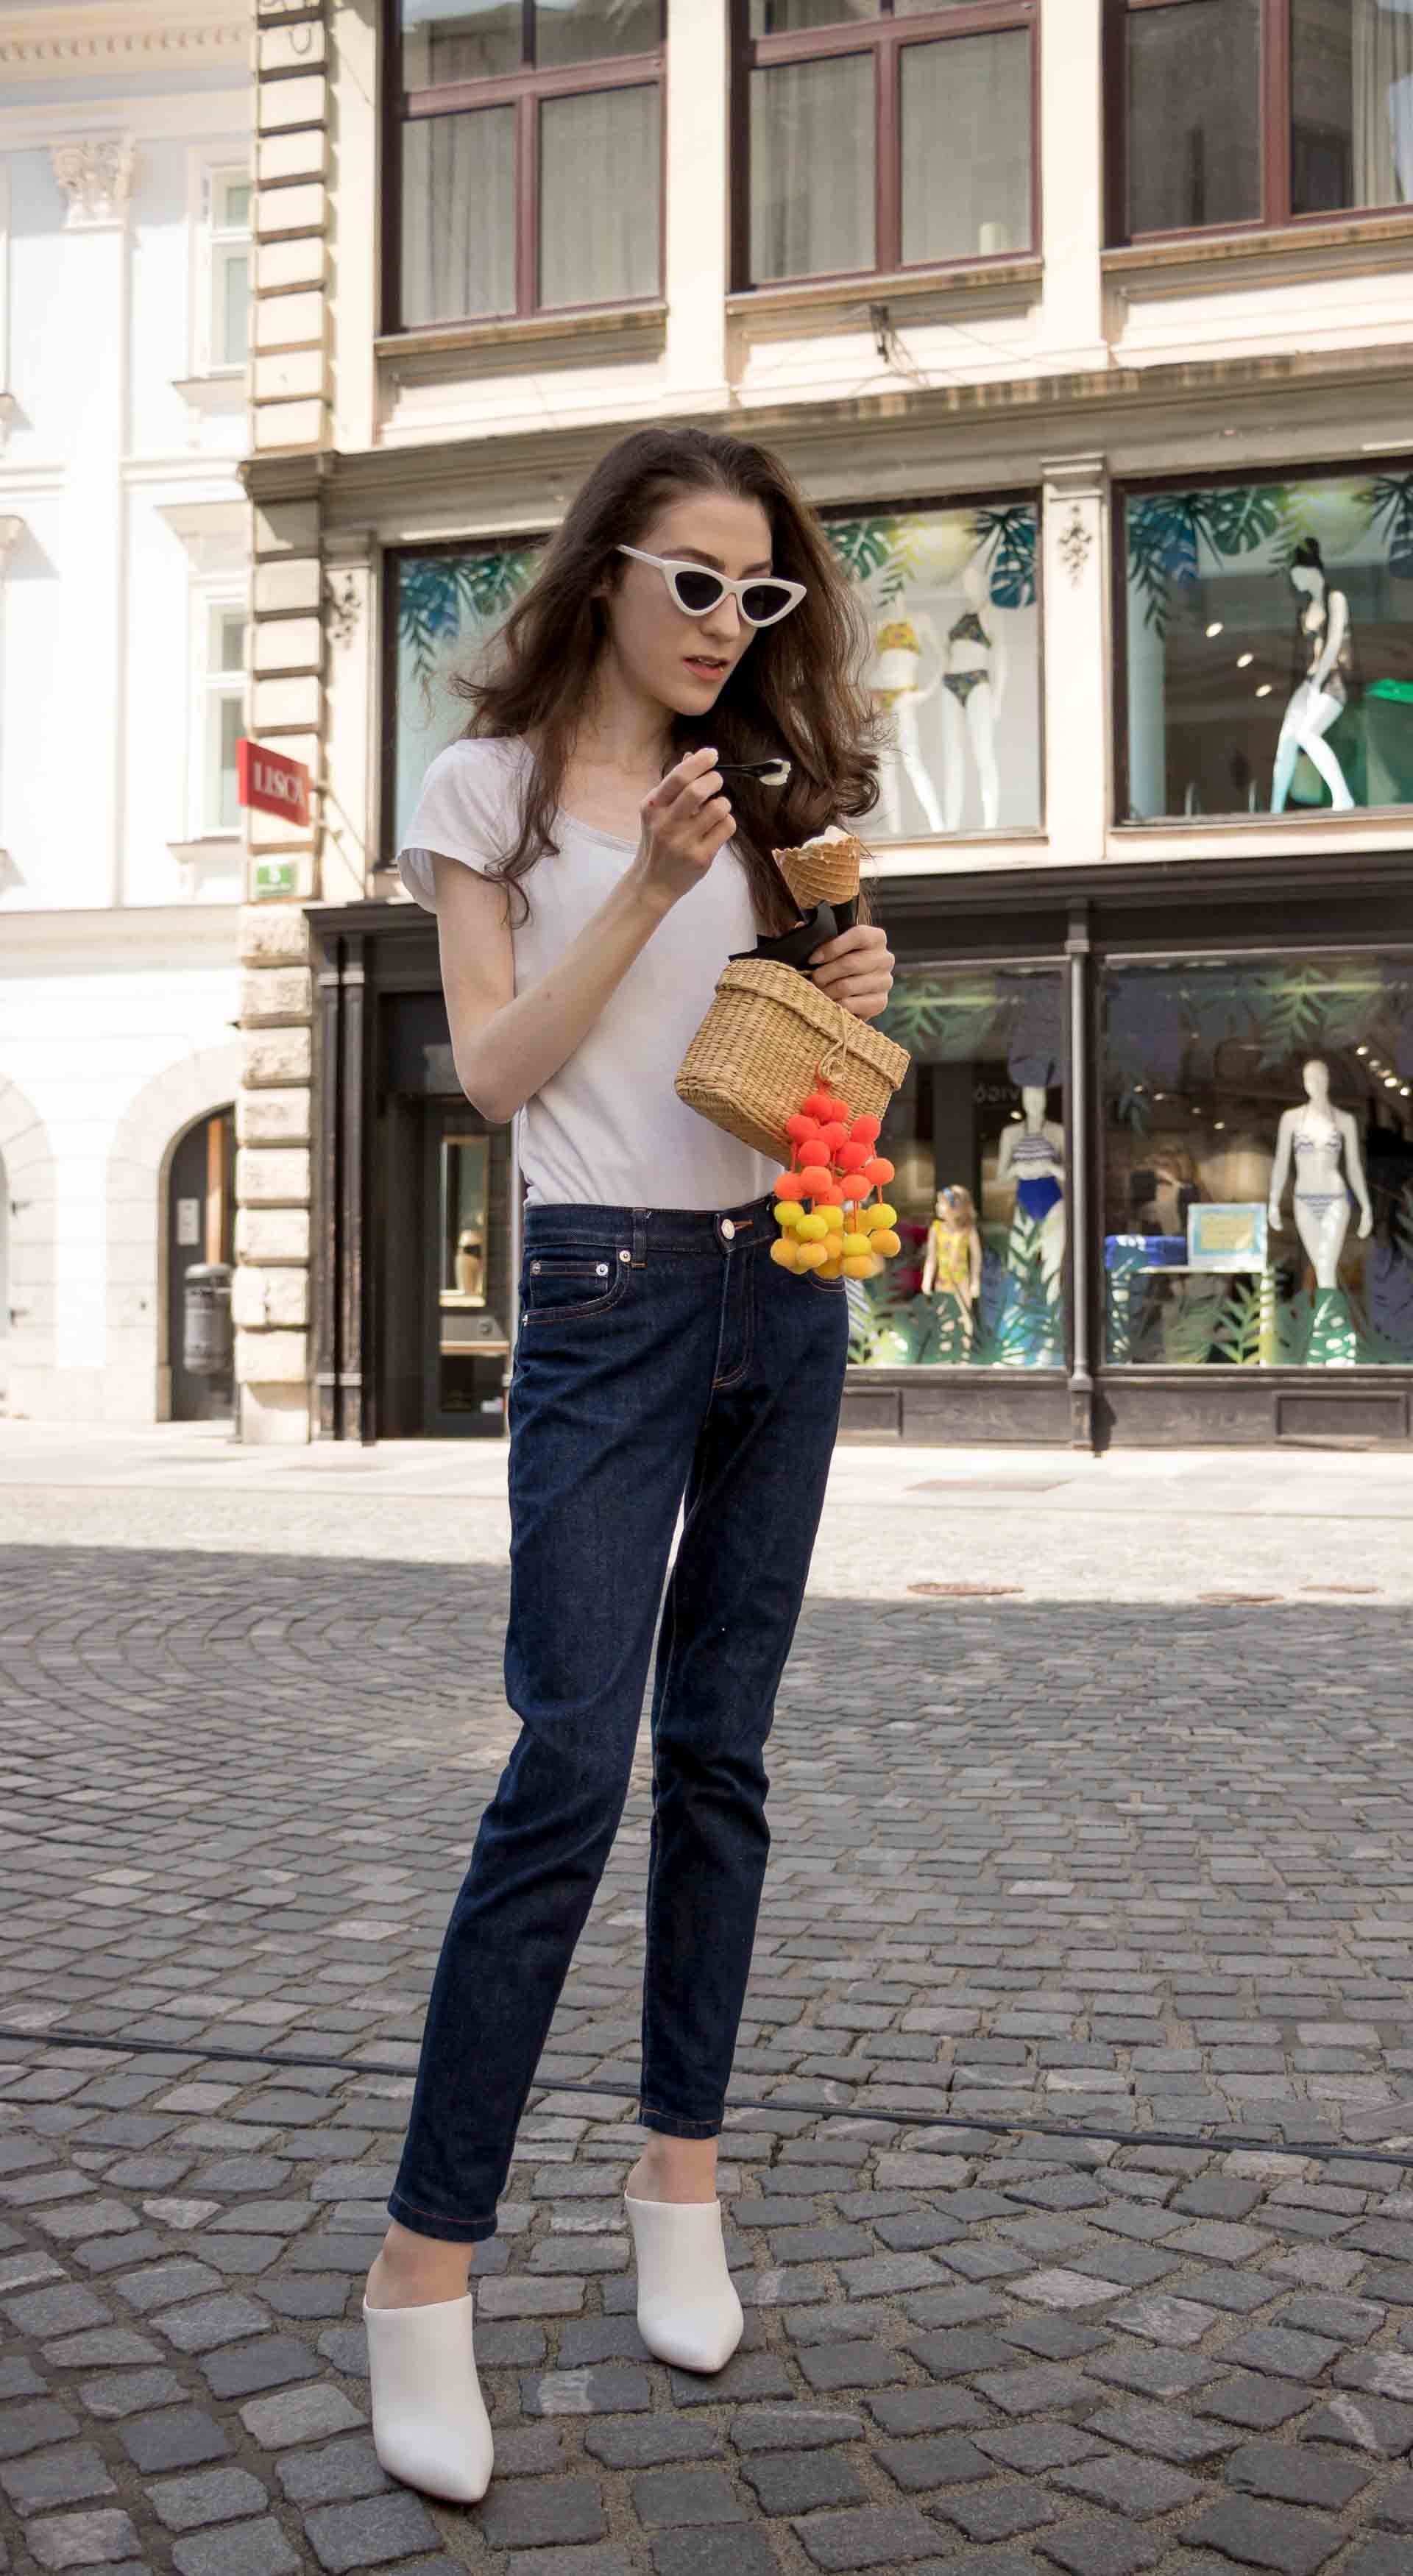 Veronika Lipar Fashion Editor of Brunette from Wall Street dressed in dark blue tapered jeans from A.P.C., H&M white T-shirt, Nannacay basket bag, white mules and Adam Selman x Le Specs white cat eye Lolita sunglasses on the street eating ice cream